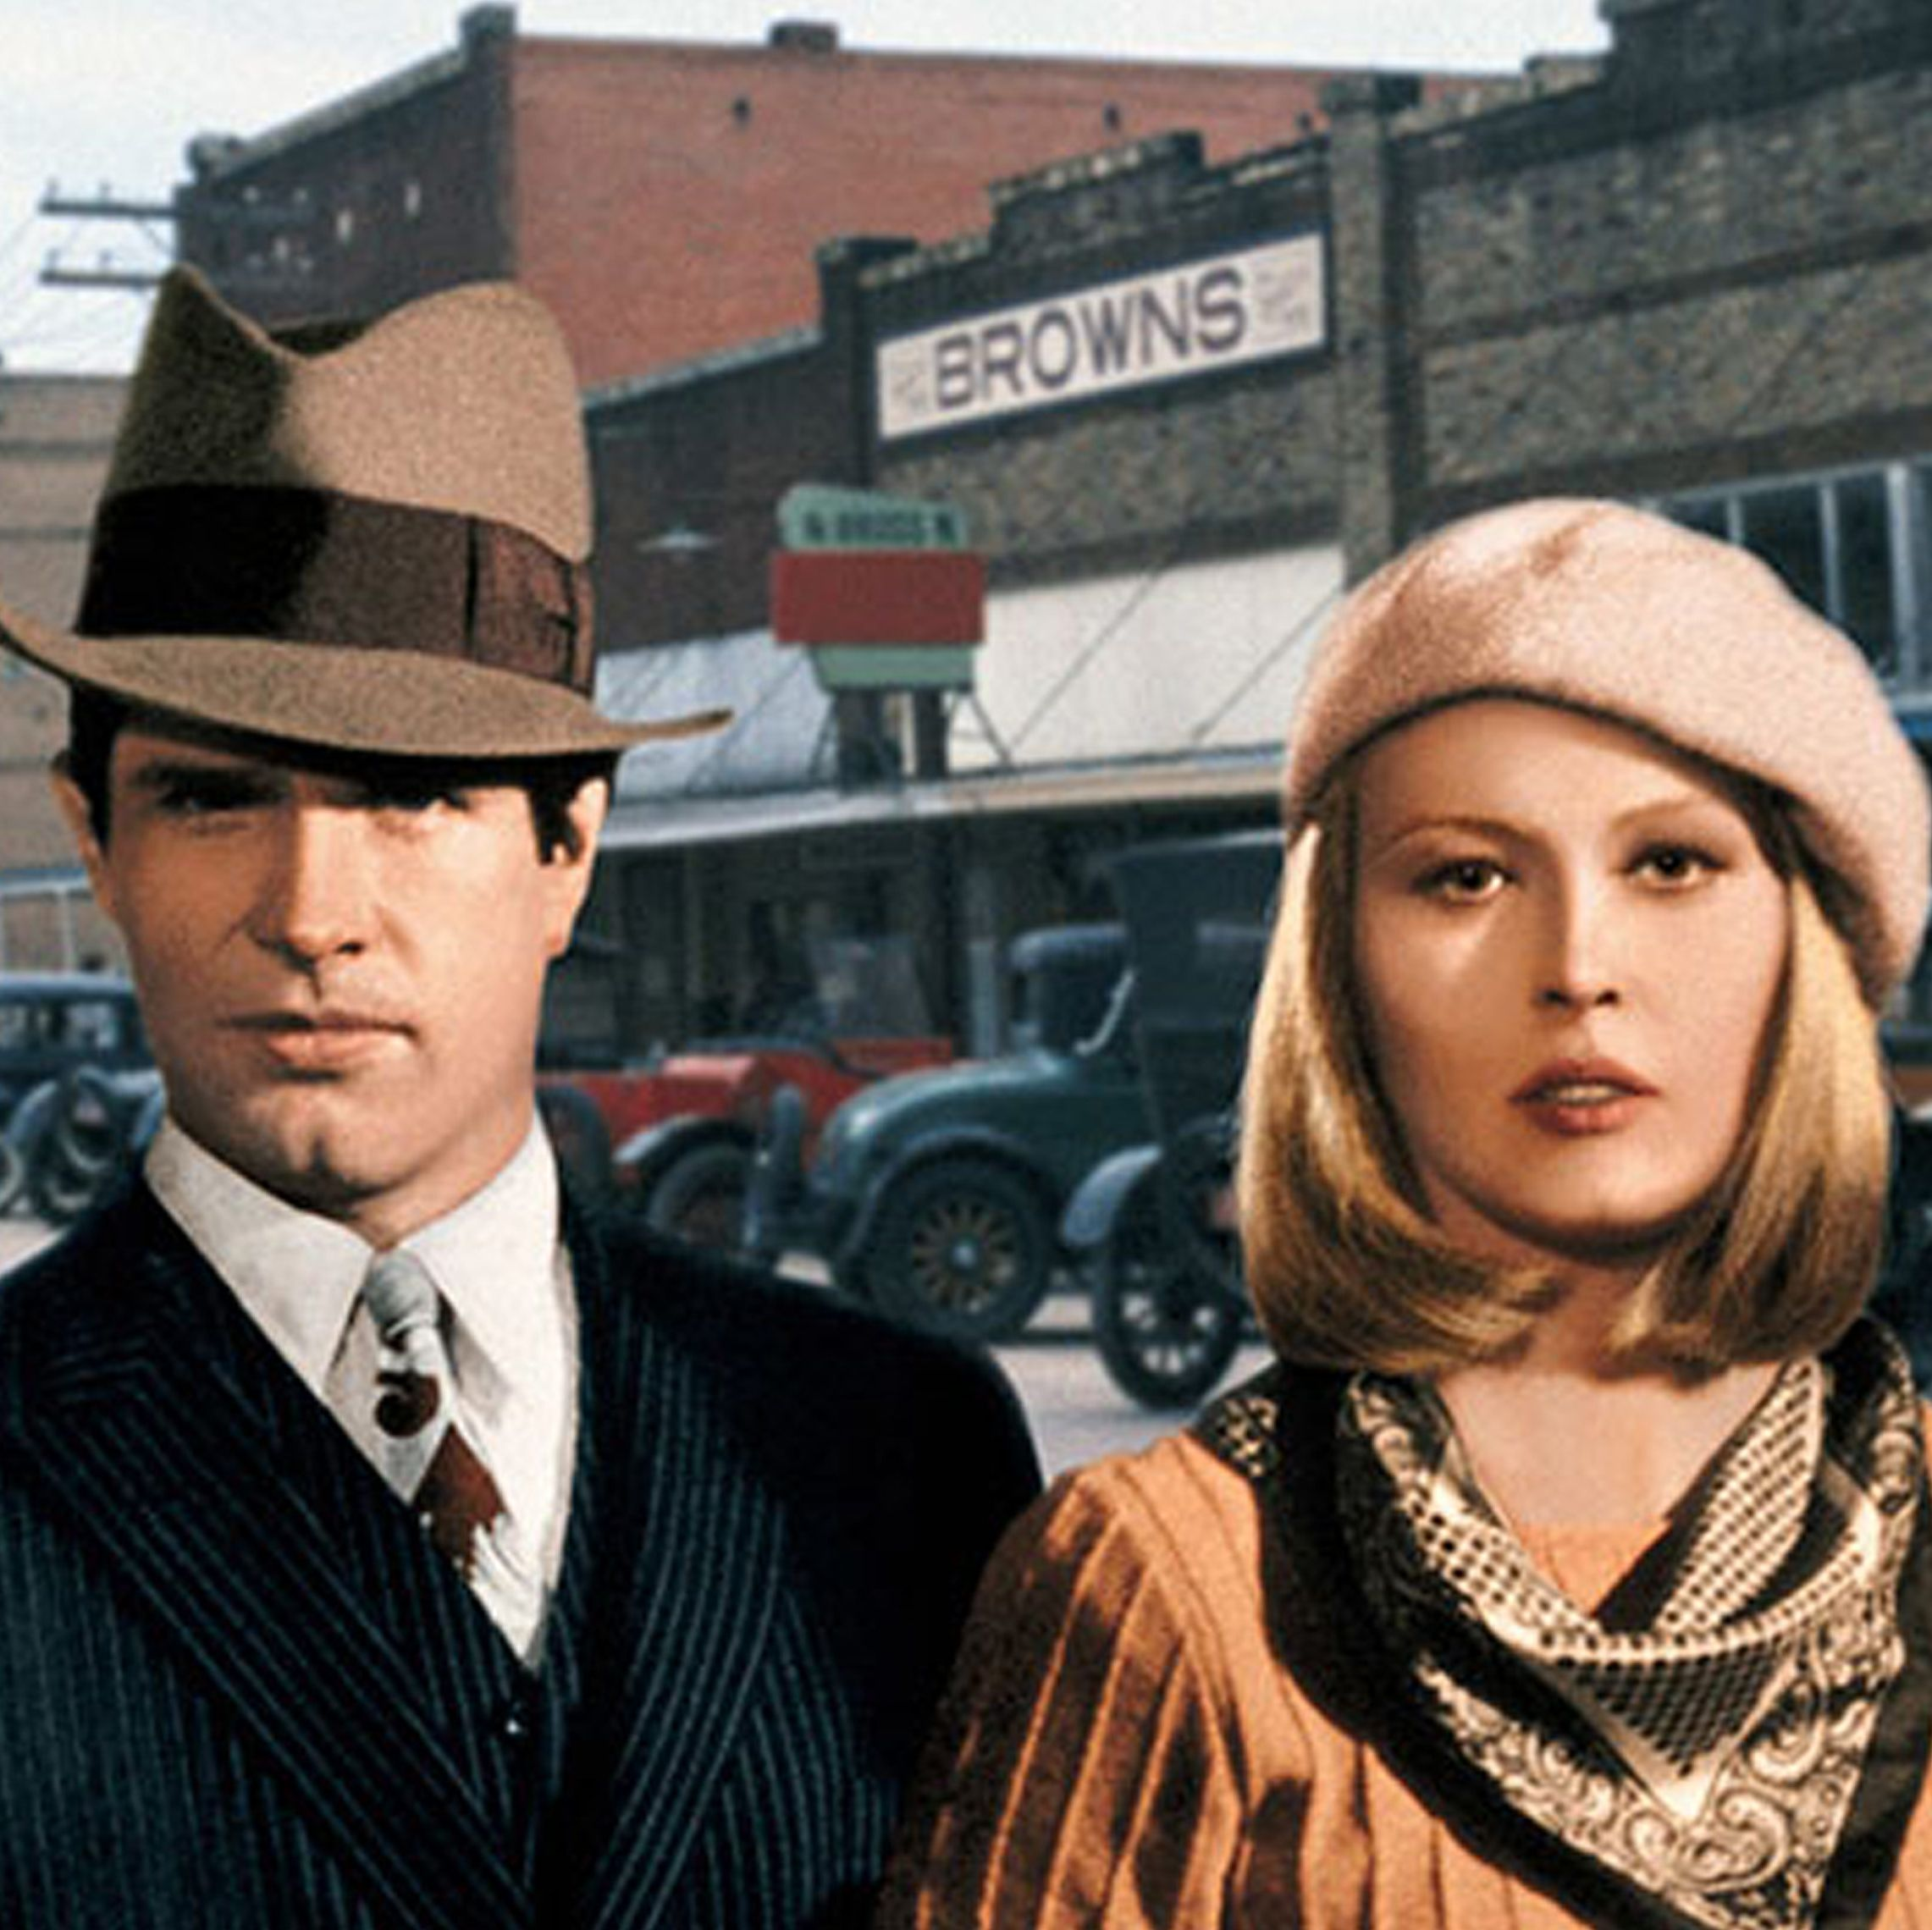 Bonnie and Clyde (1967) To be frank, this is the GOAT.